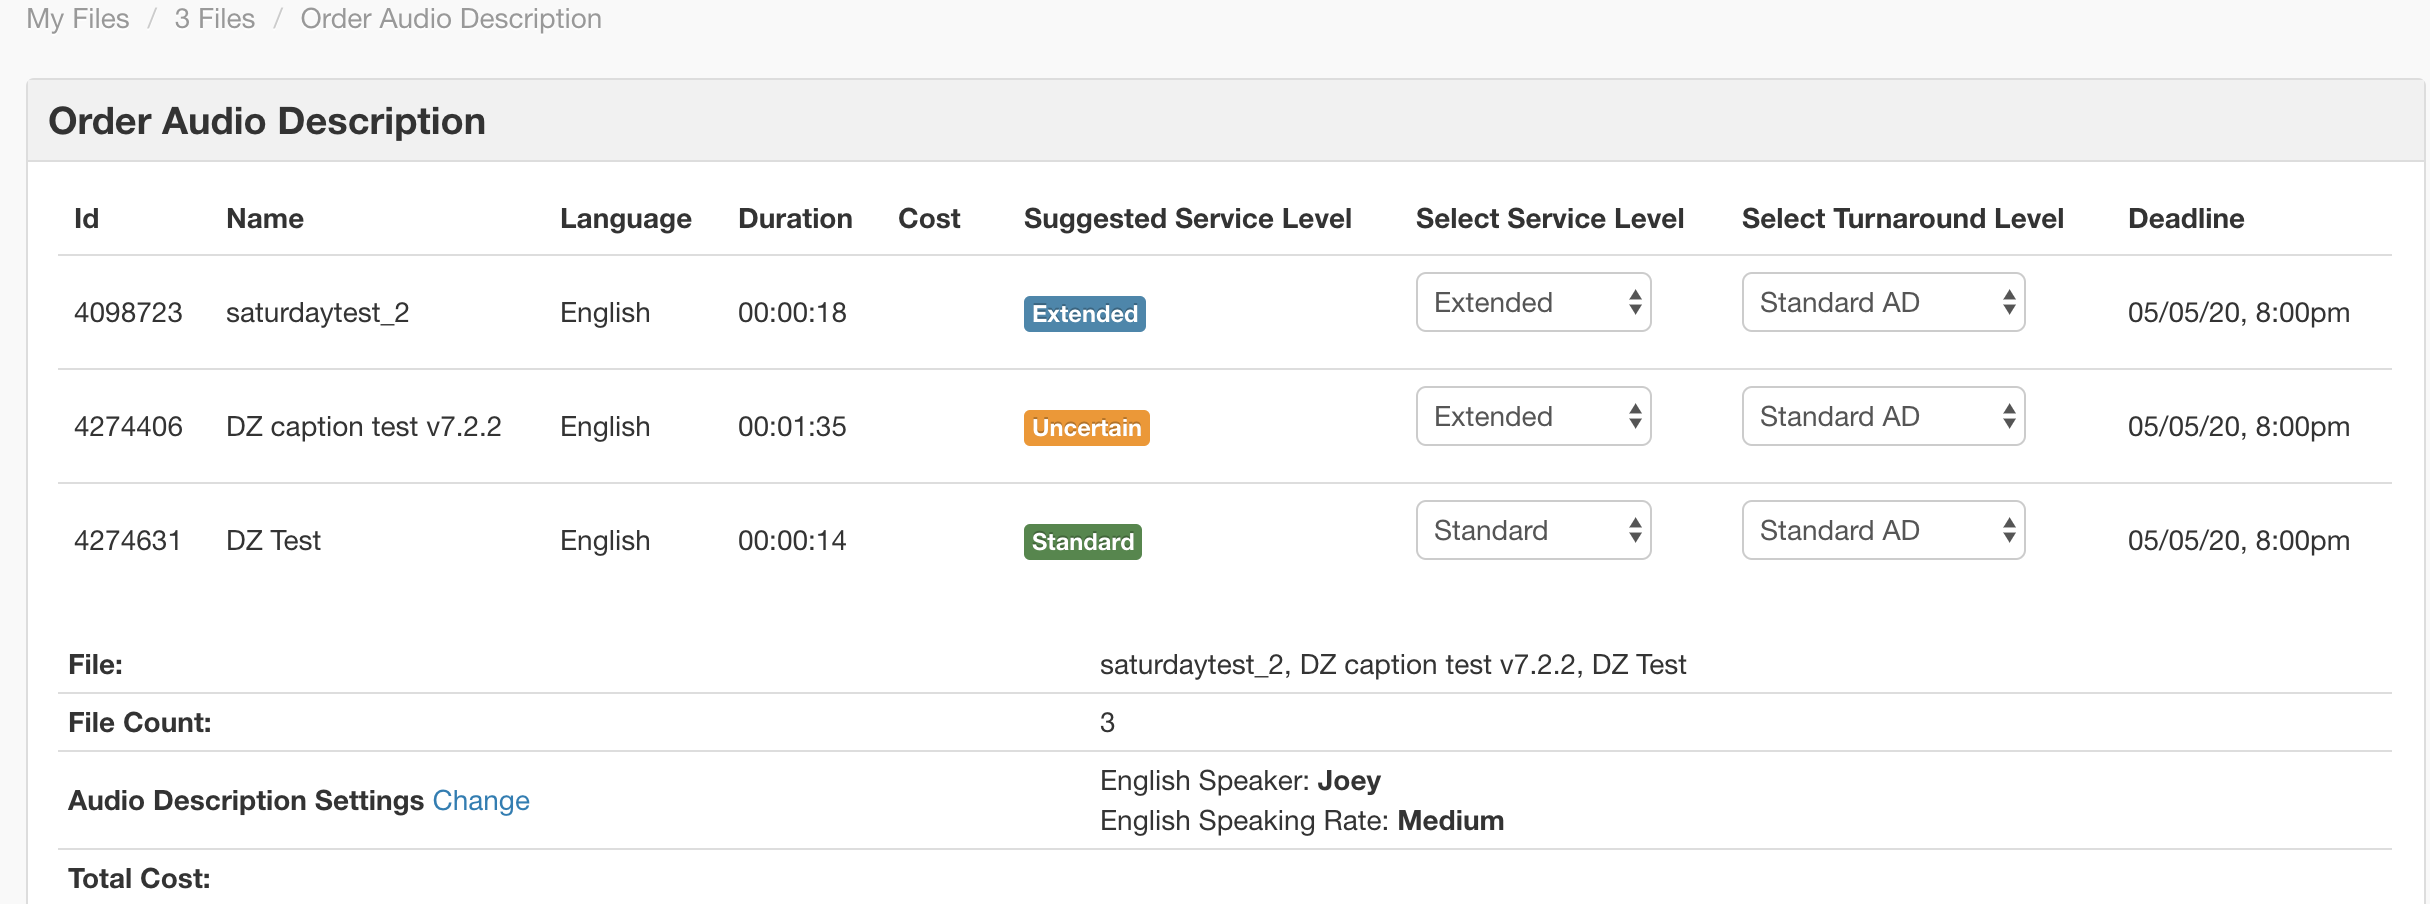 Each file selected will show a suggested service level and a dropdown to select the service level desired